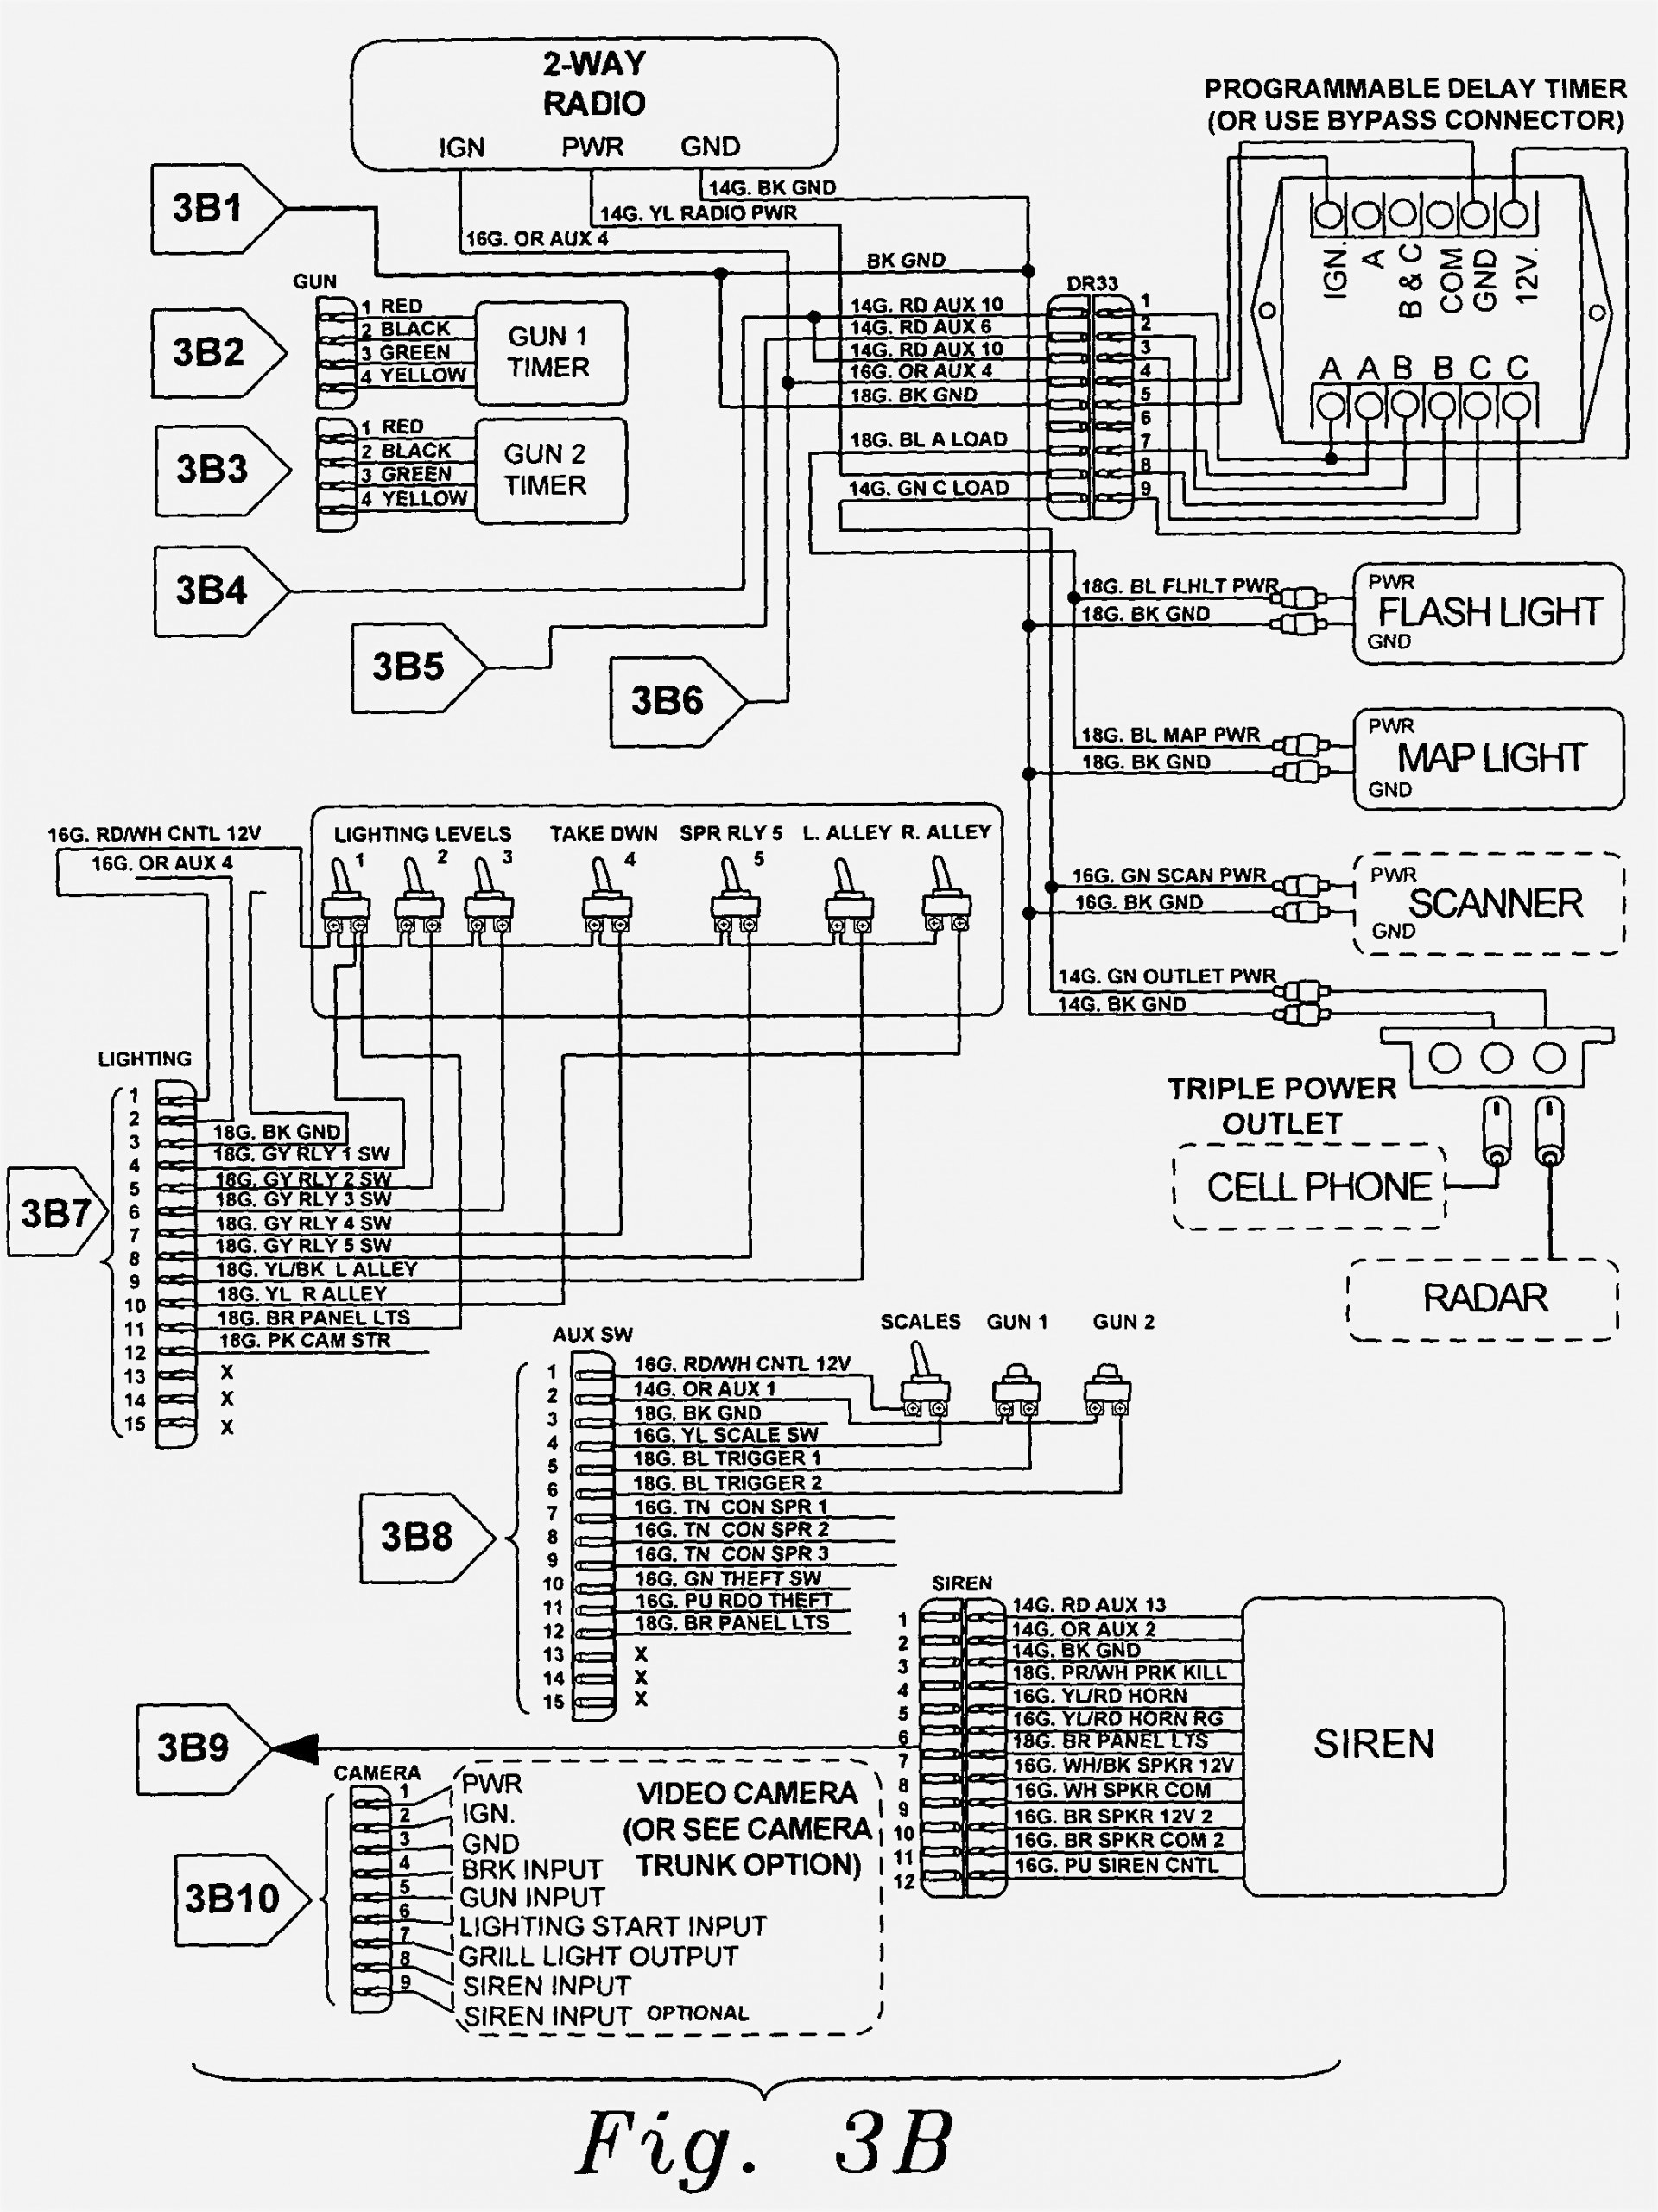 Whelen Justice Wiring Diagram - Wiring Diagrams Click - Whelen Light Bar Wiring Diagram